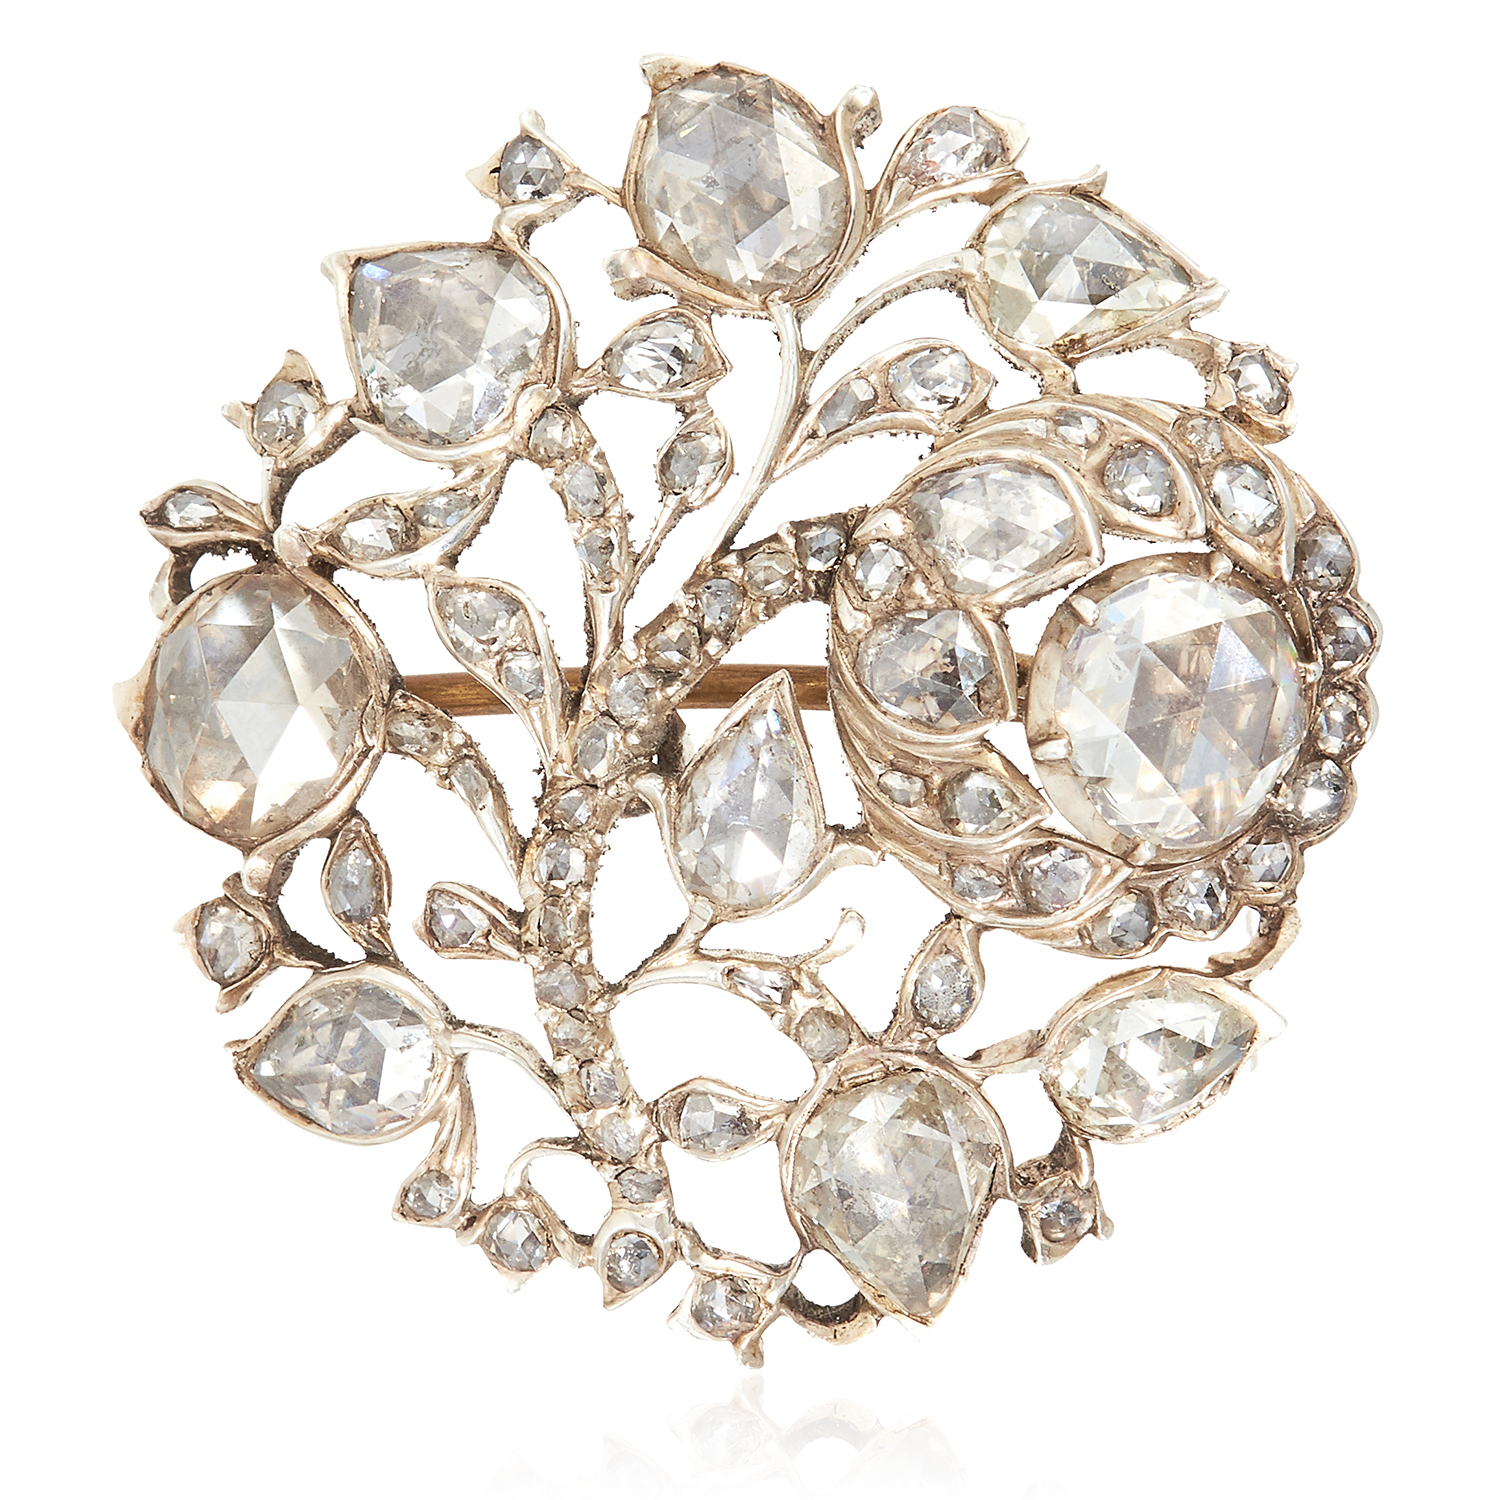 Los 42 - AN ANTIQUE DIAMOND BROOCH, 19TH CENTURY possibly Colonial, of circular form with foliate and